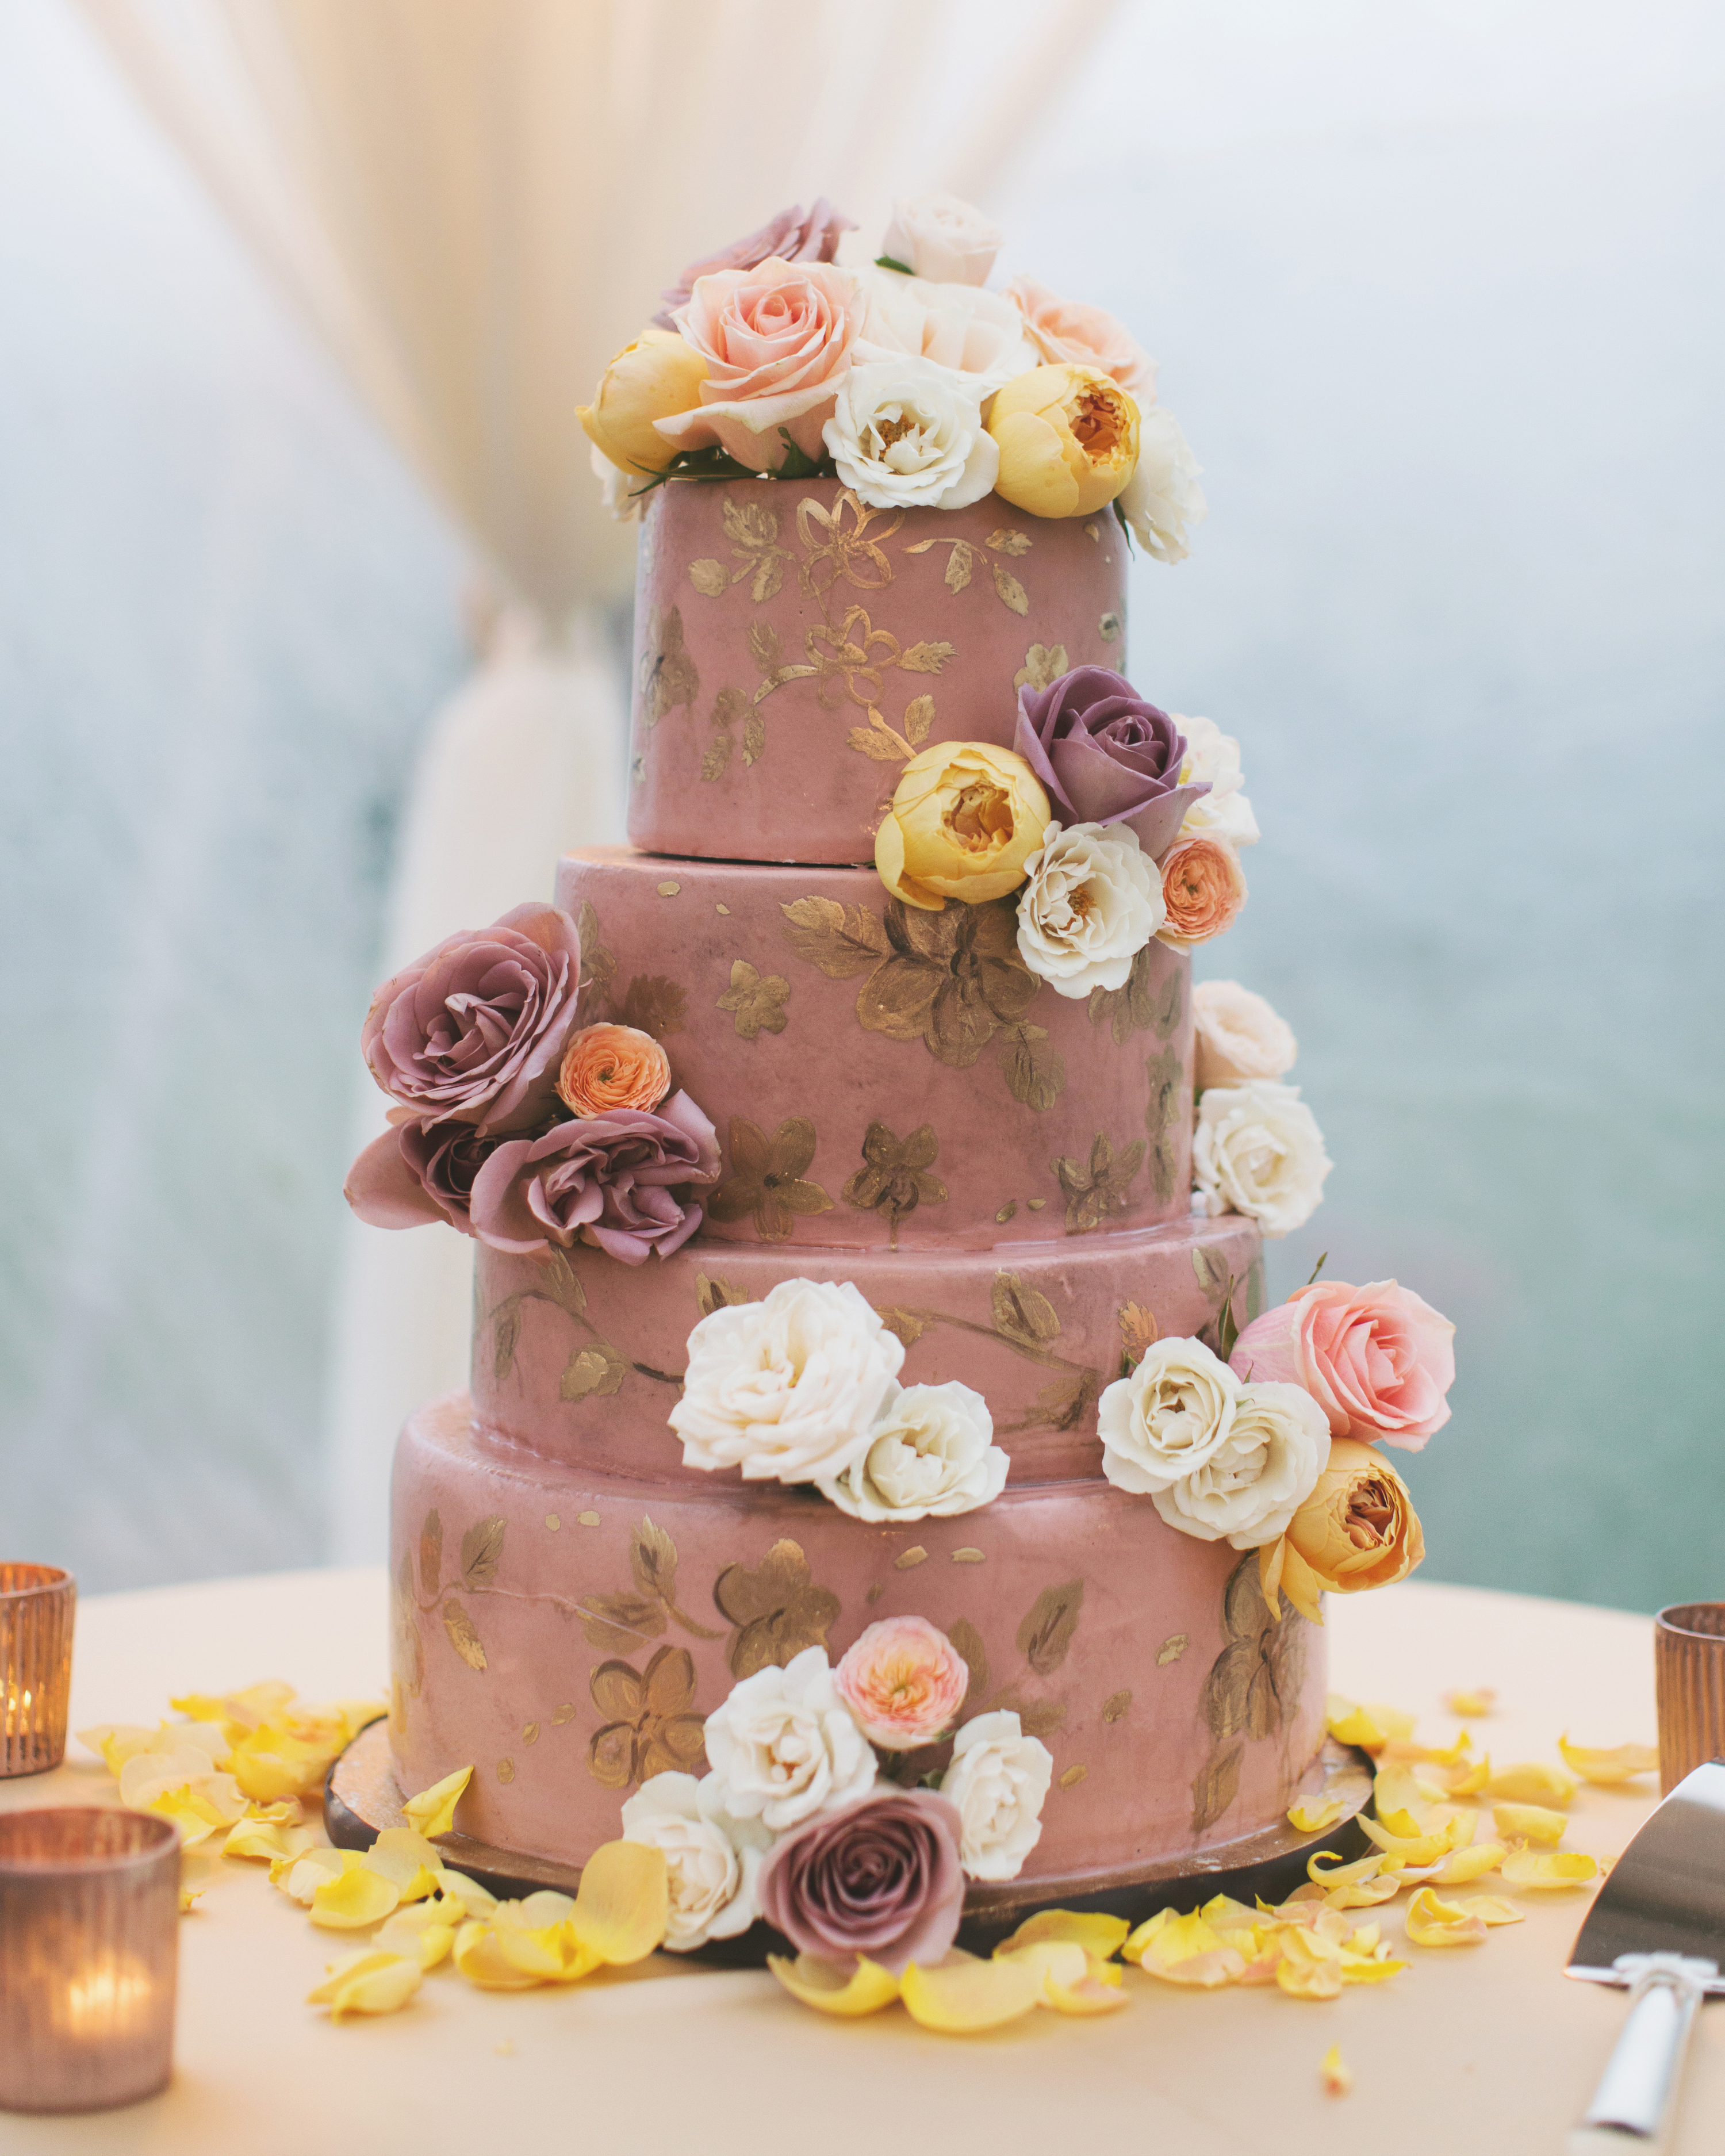 What Are the Fees for Delivery and Setup of the Cake?